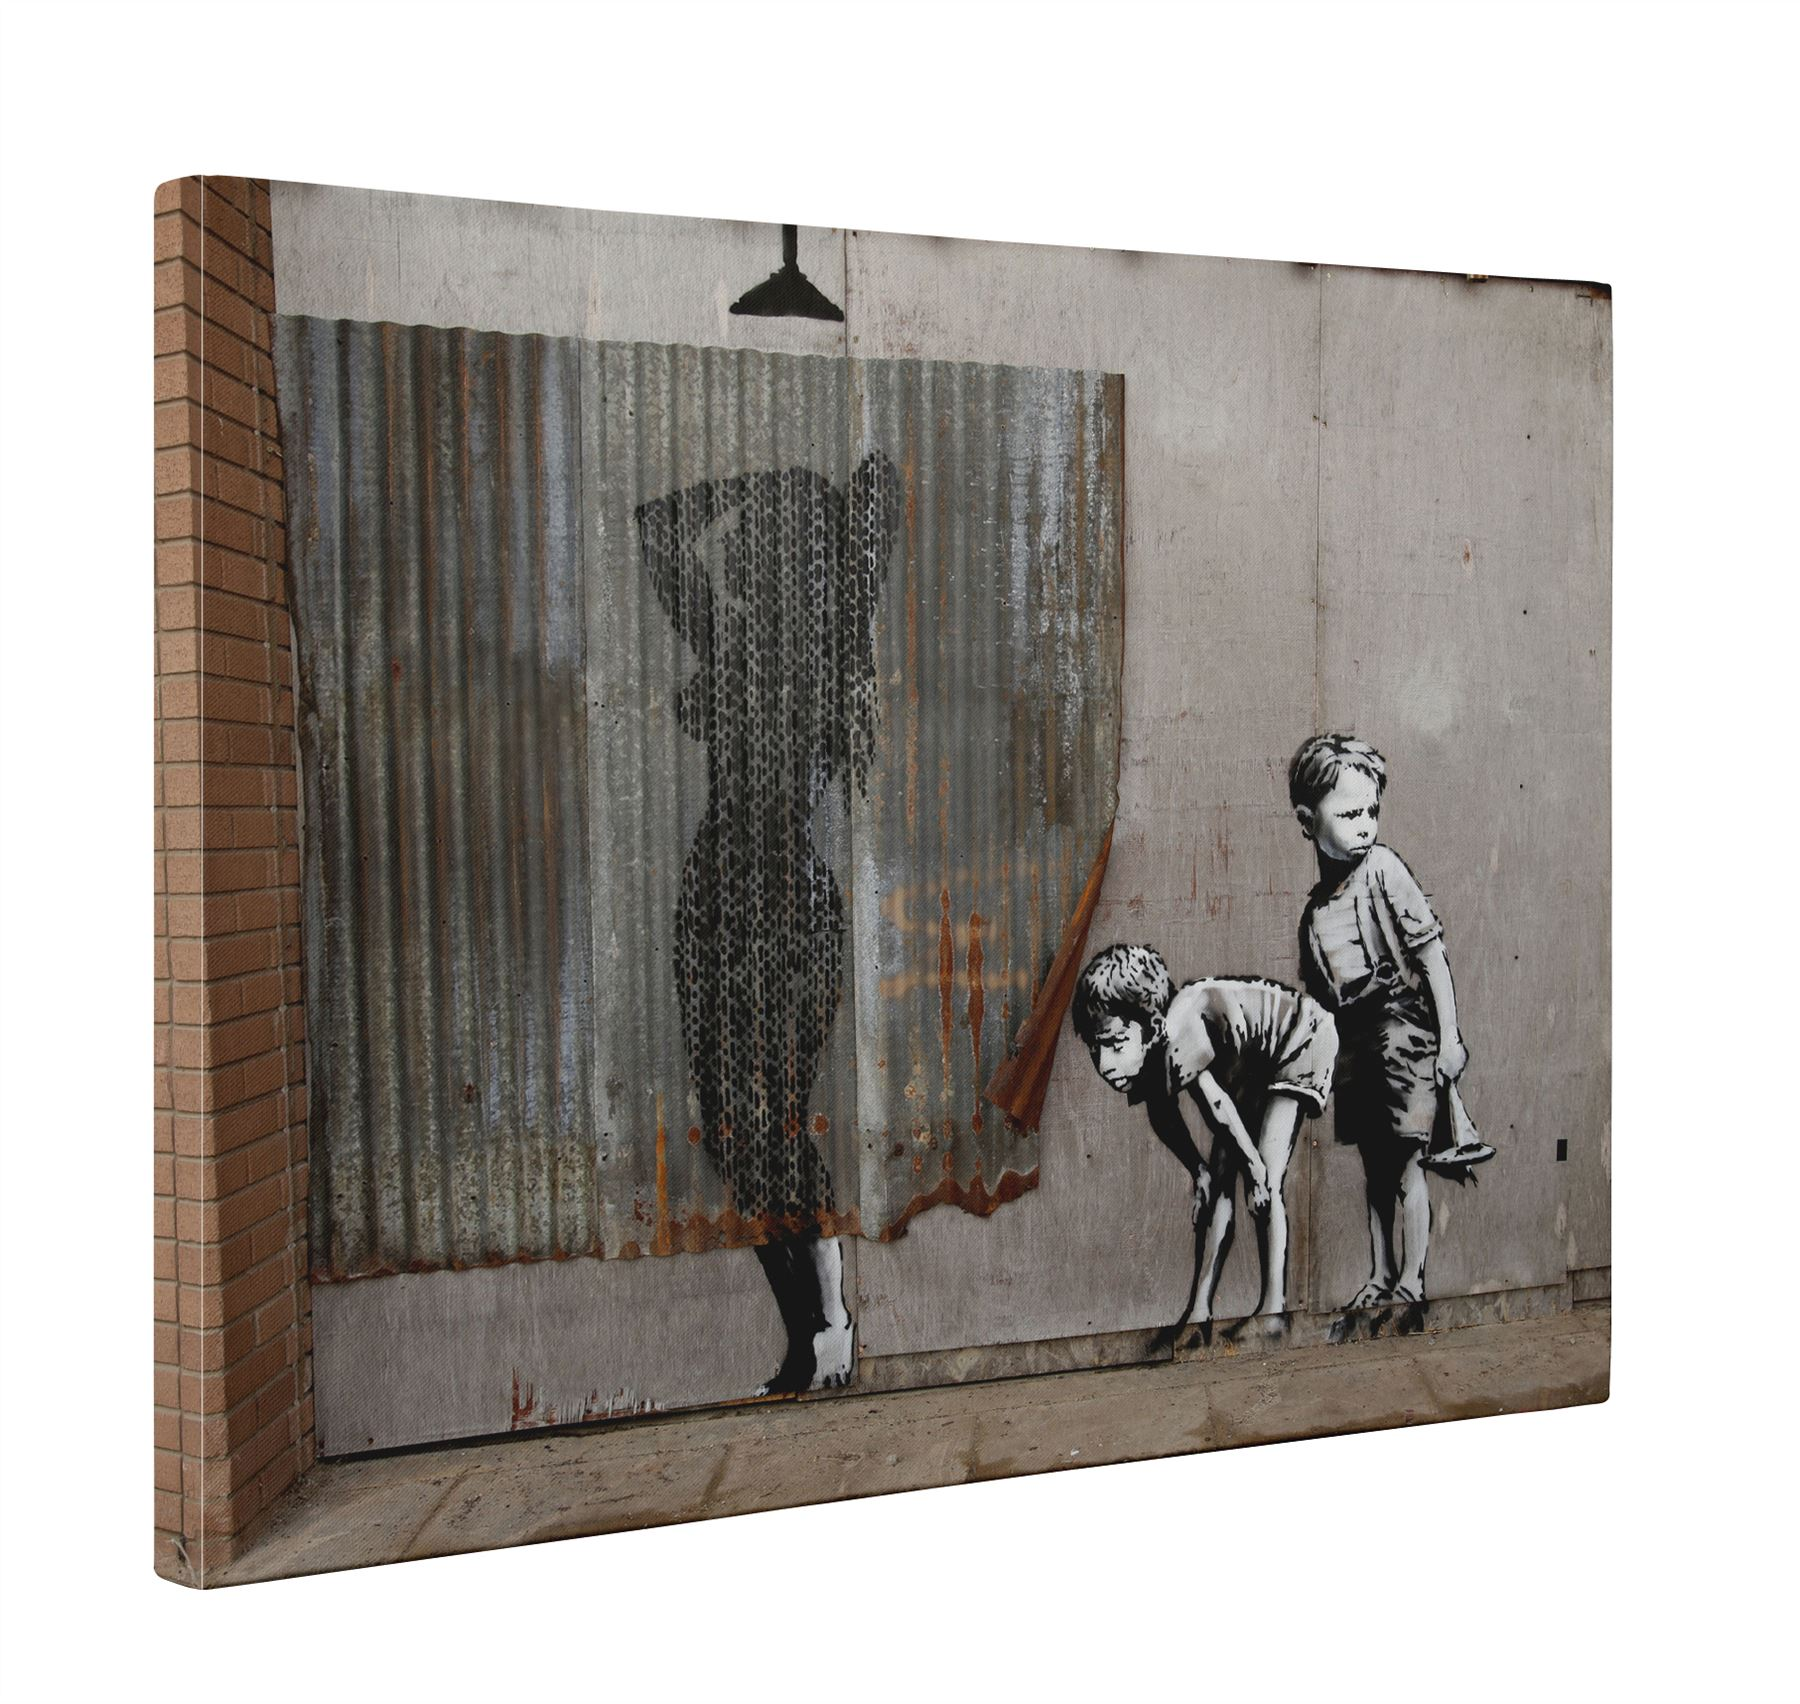 6245951112592 Details about Banksy Shower Kids Peeping Toms Box Canvas Print Wall Art -  Choice of Sizes